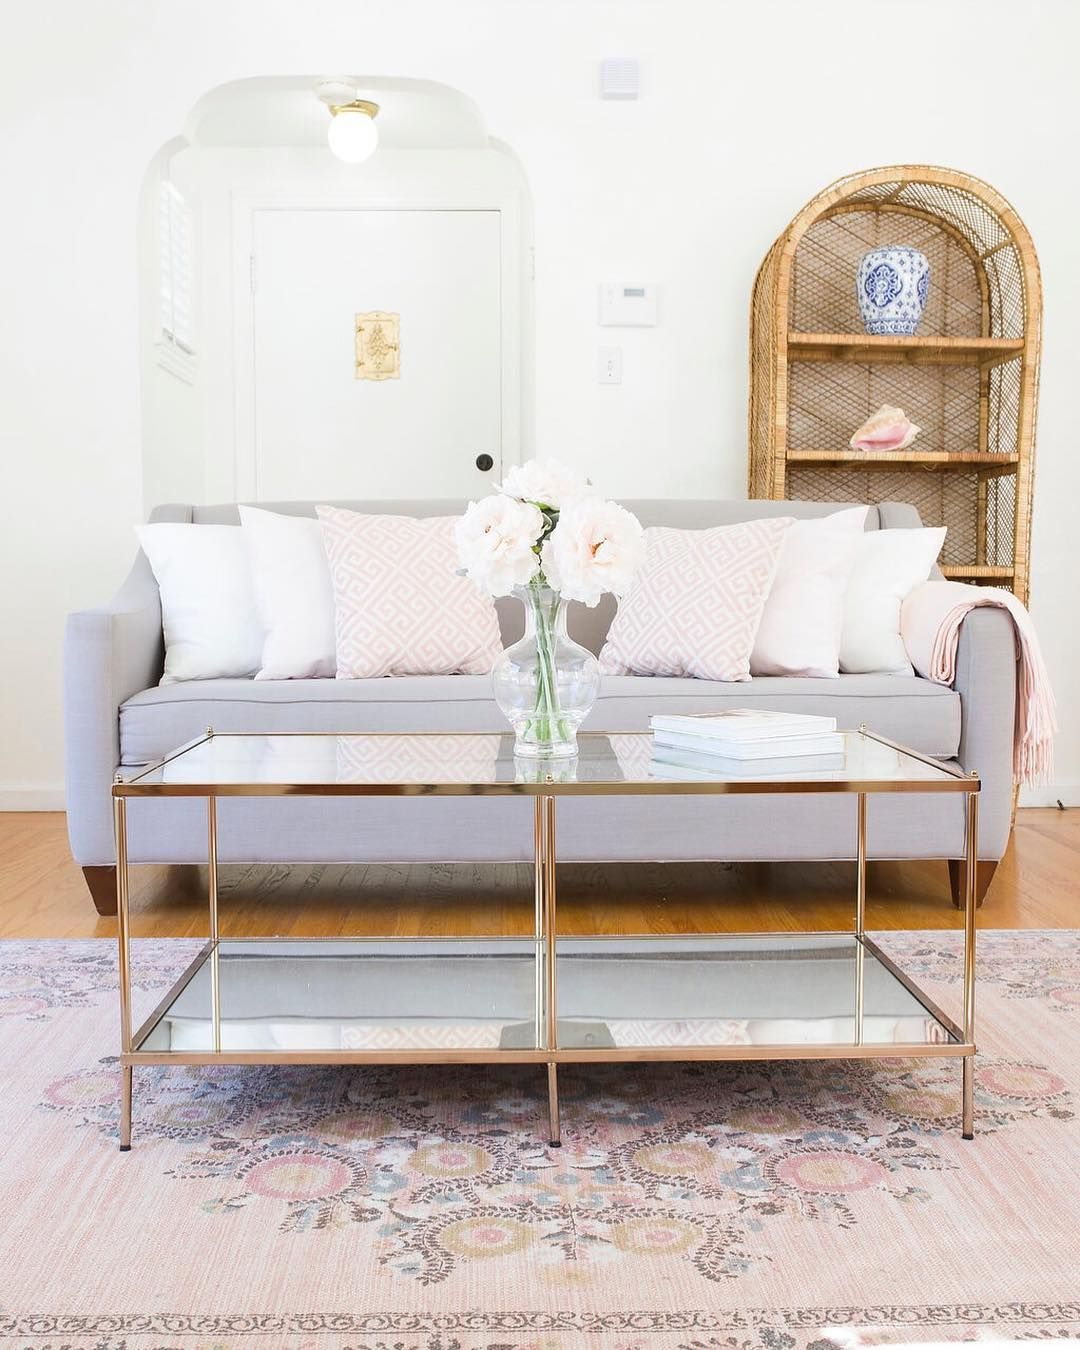 What Do You Get When You Combine The Cort Greyson Sofa With An